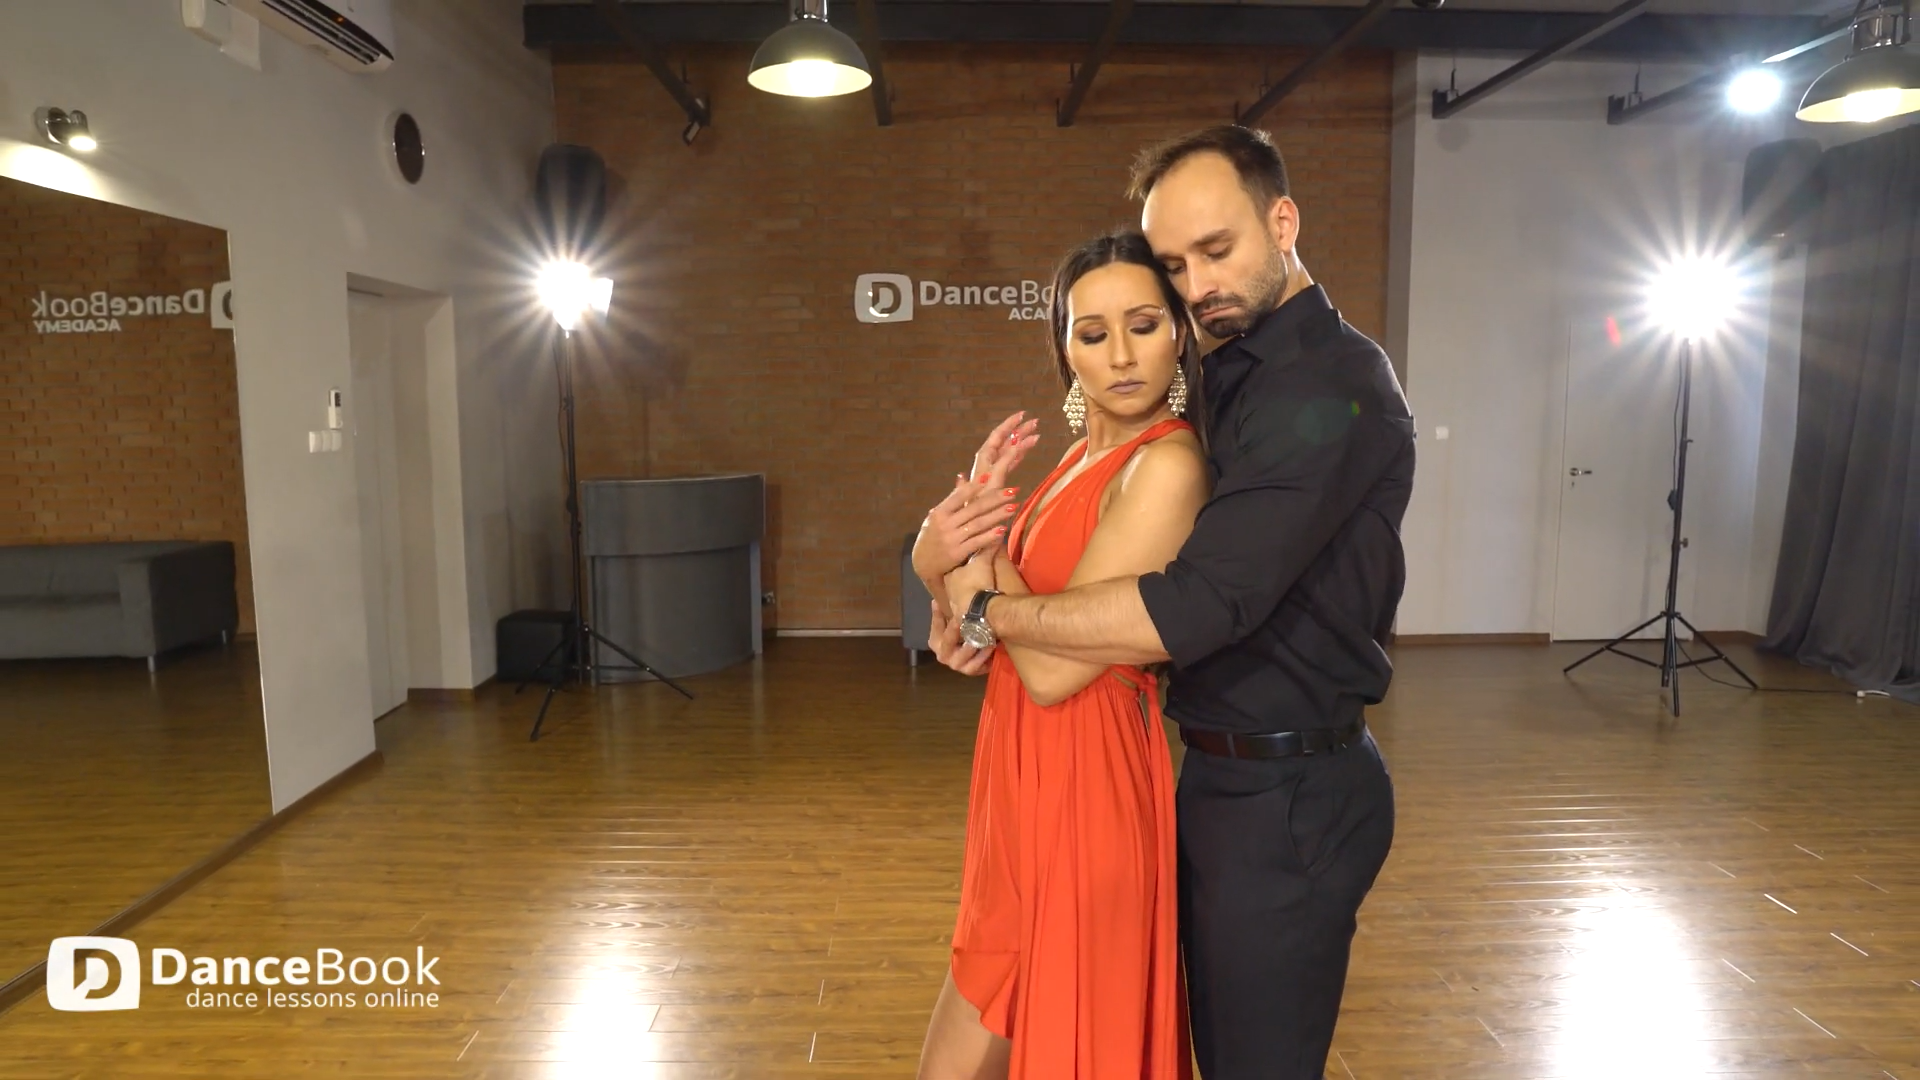 Michele Morrone - Hard For Me - Wedding Dance Choreography